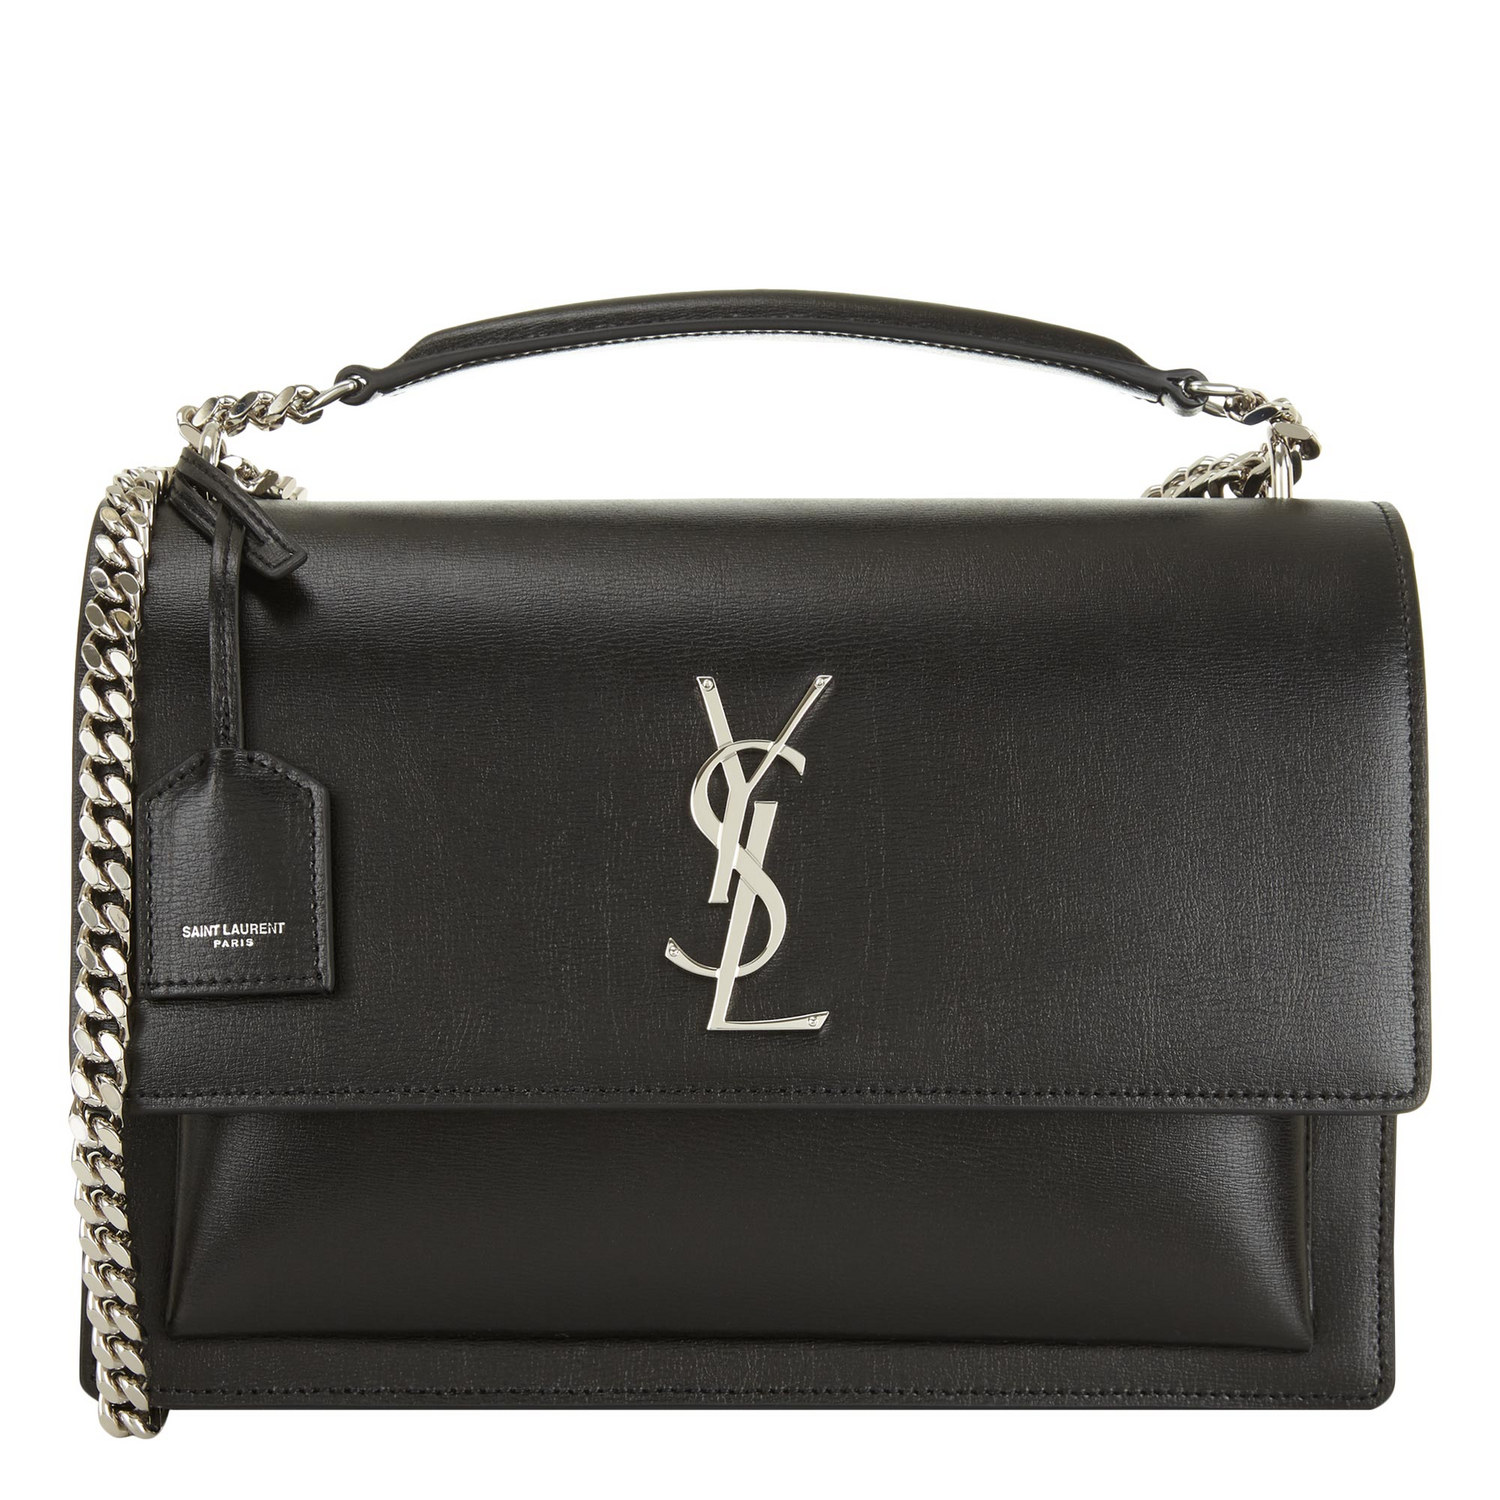 Saint Laurent Monogram Sunset Bag